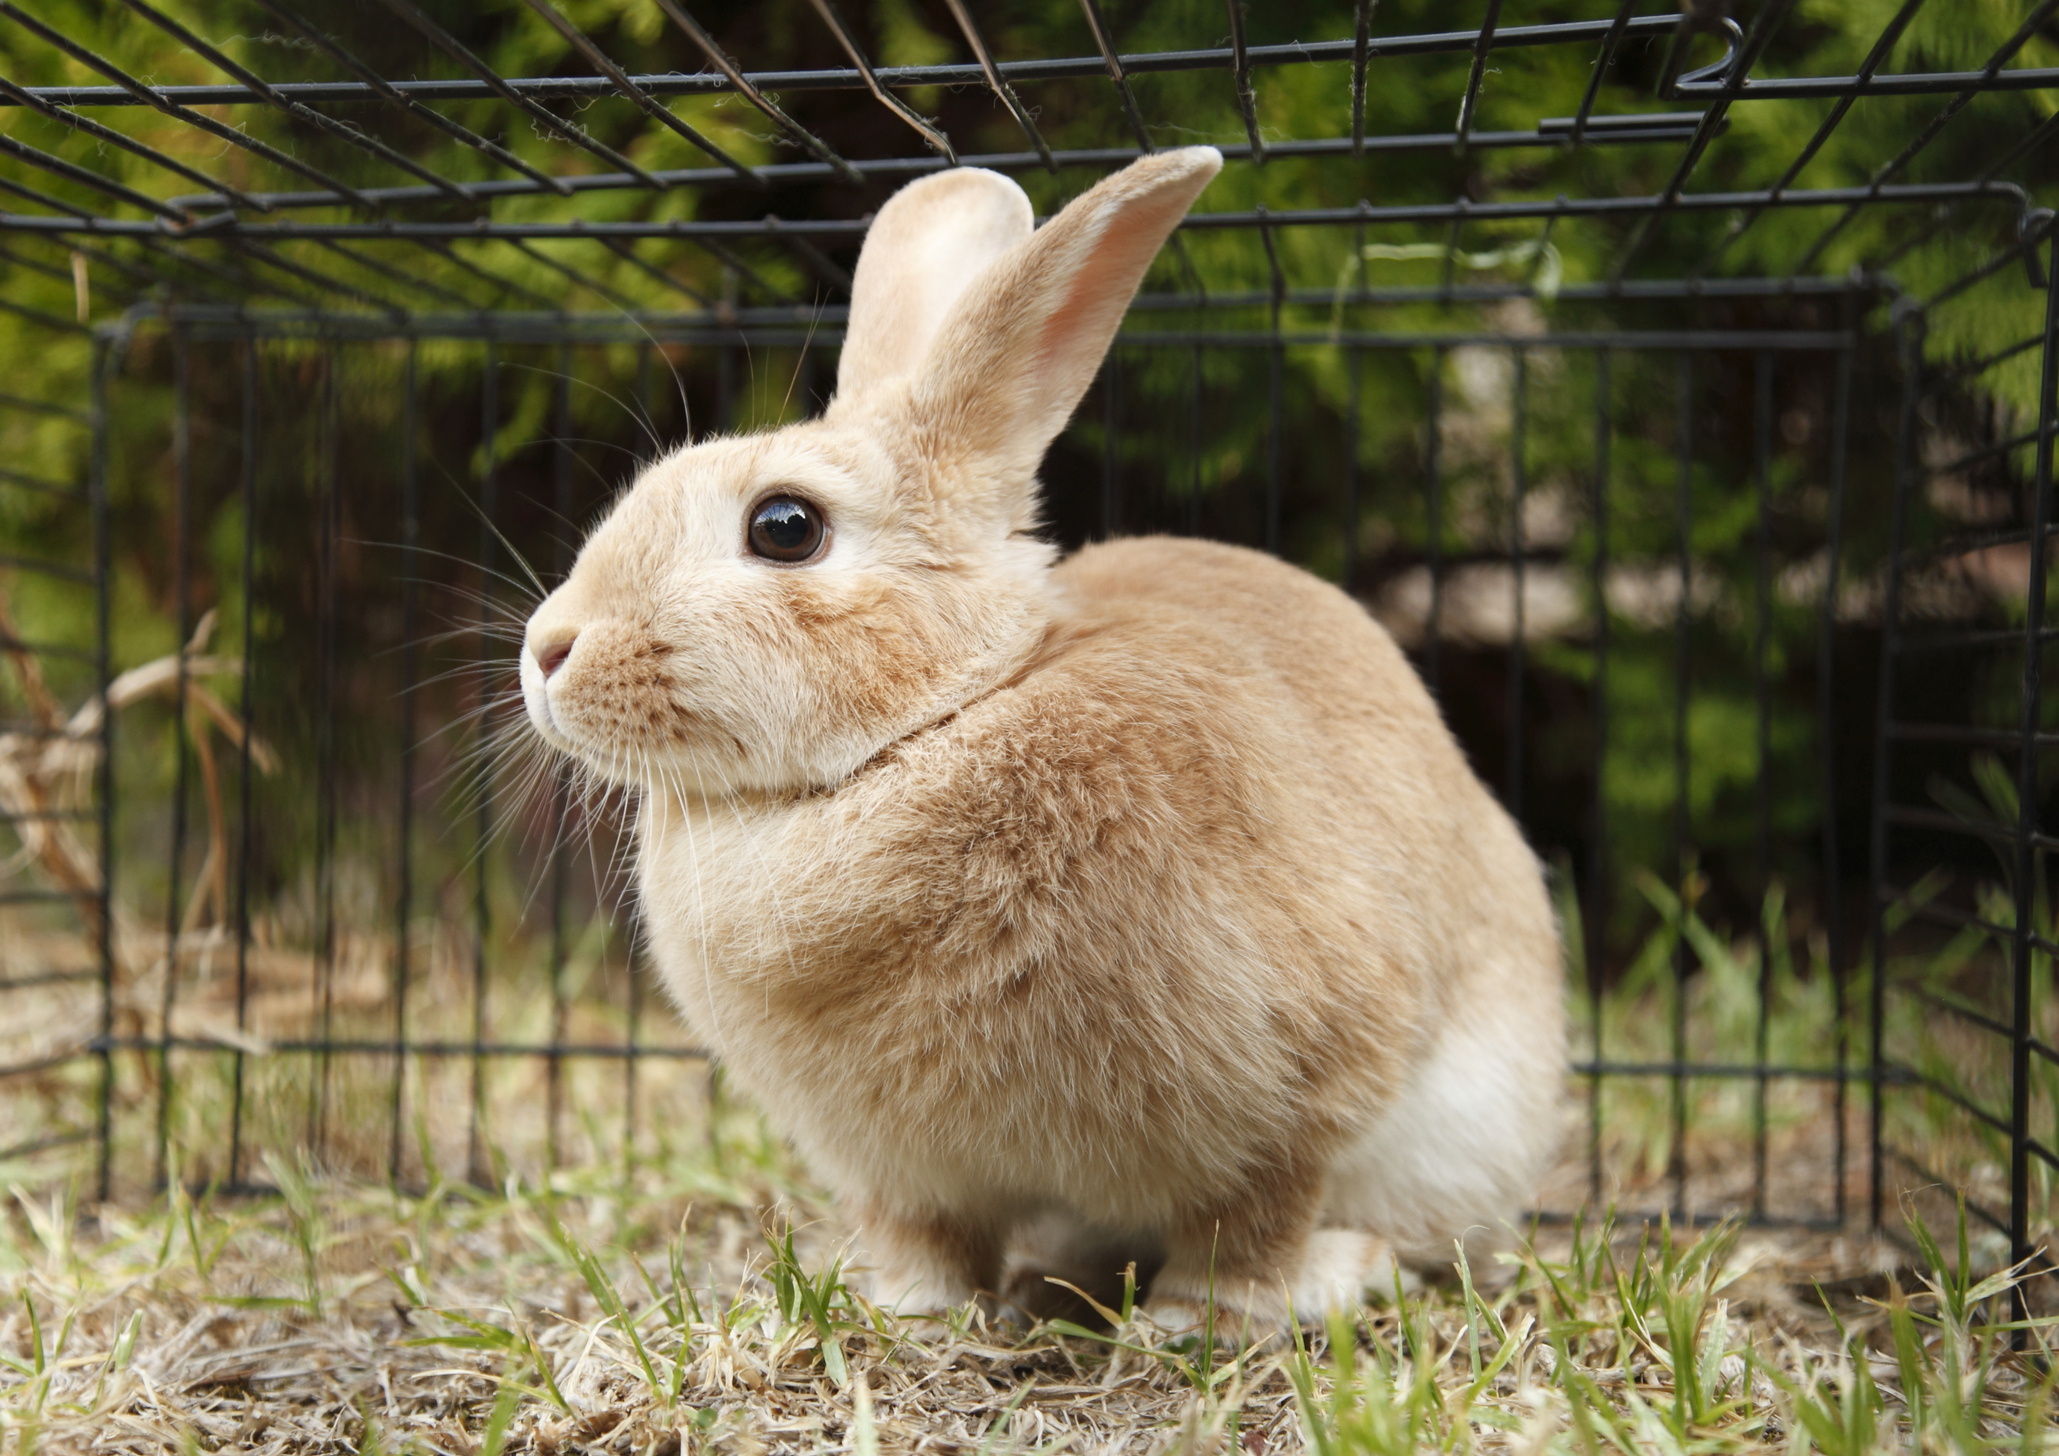 Summer Outing Idea: Visit an Animal Rescue